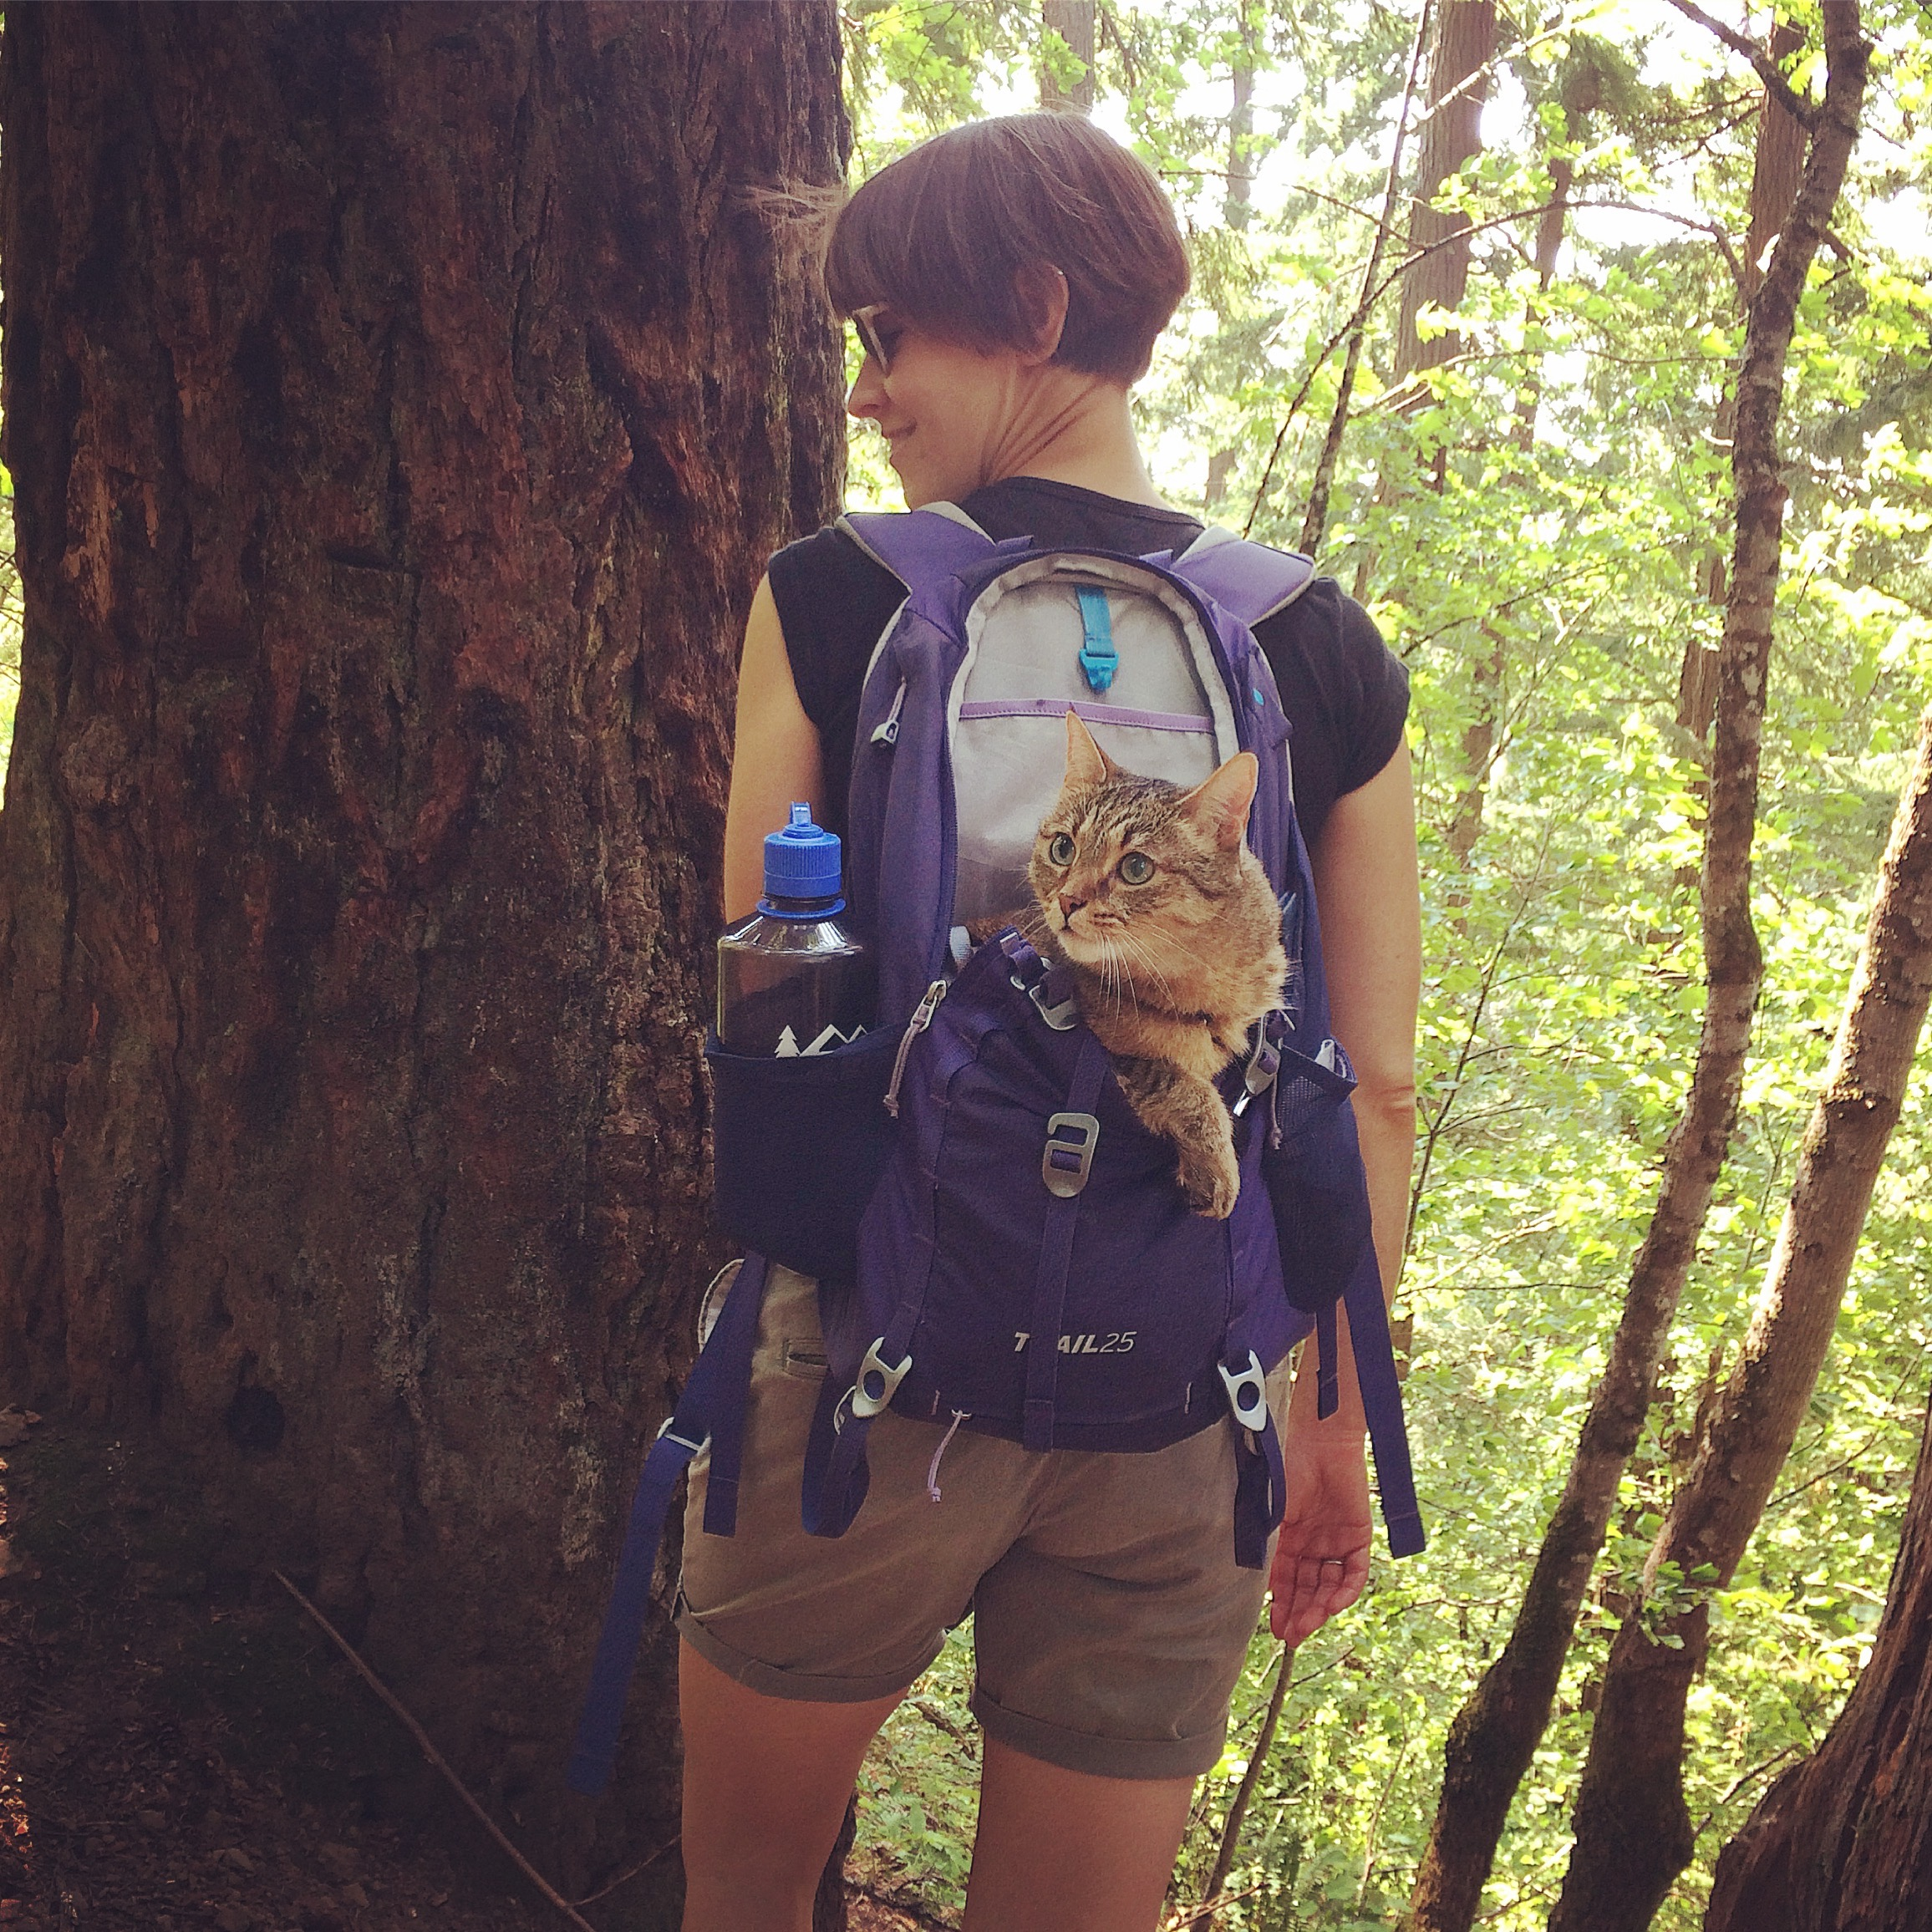 Summer hiking fun in Oregon, 2017. Best face ever.